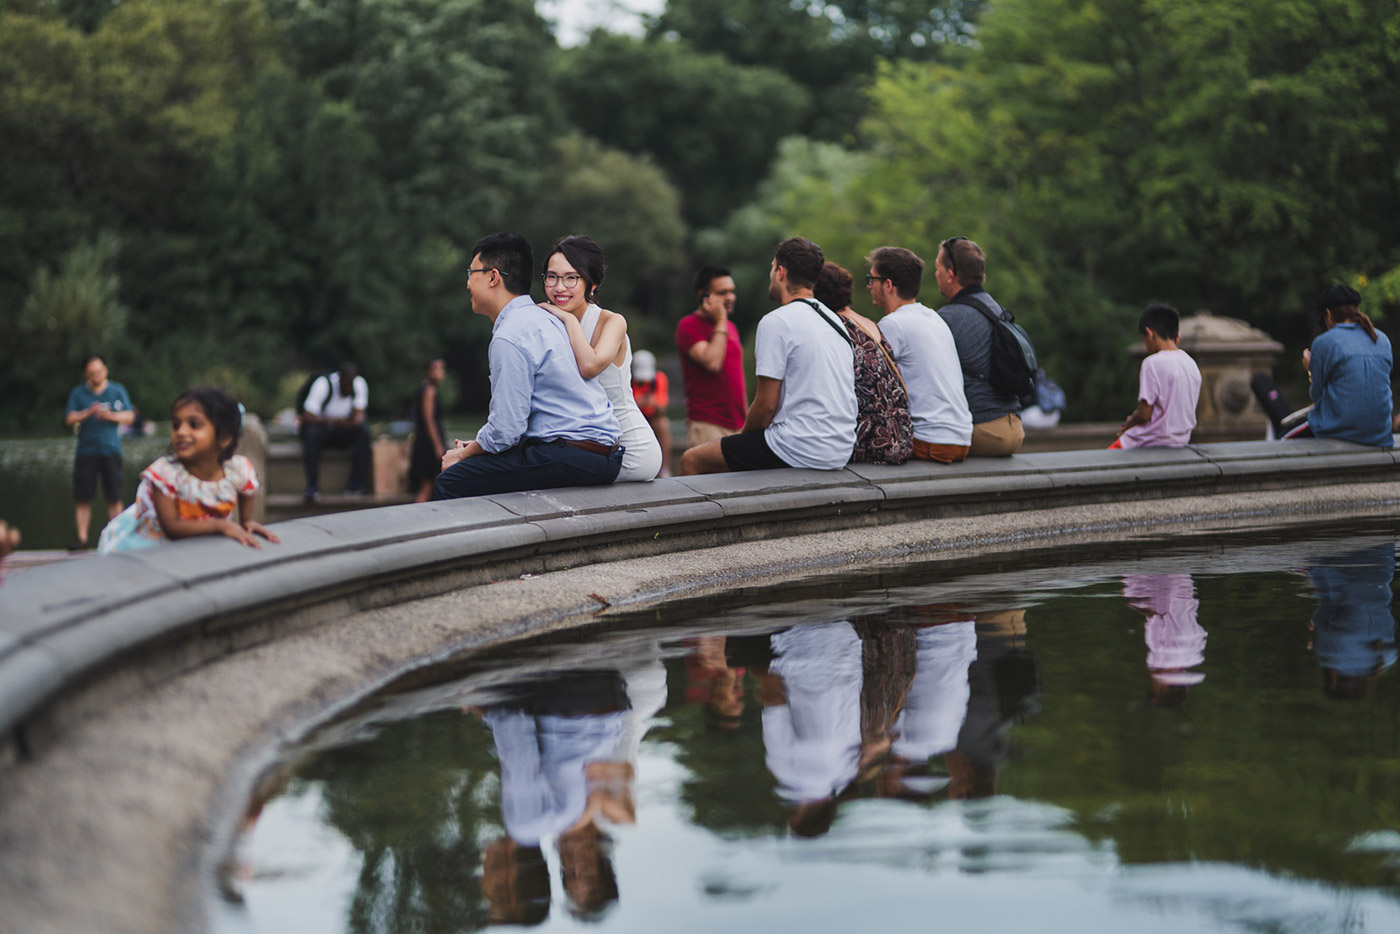 Newly engaged couple at Bethesda Fountain in Central Park, right after their proposal